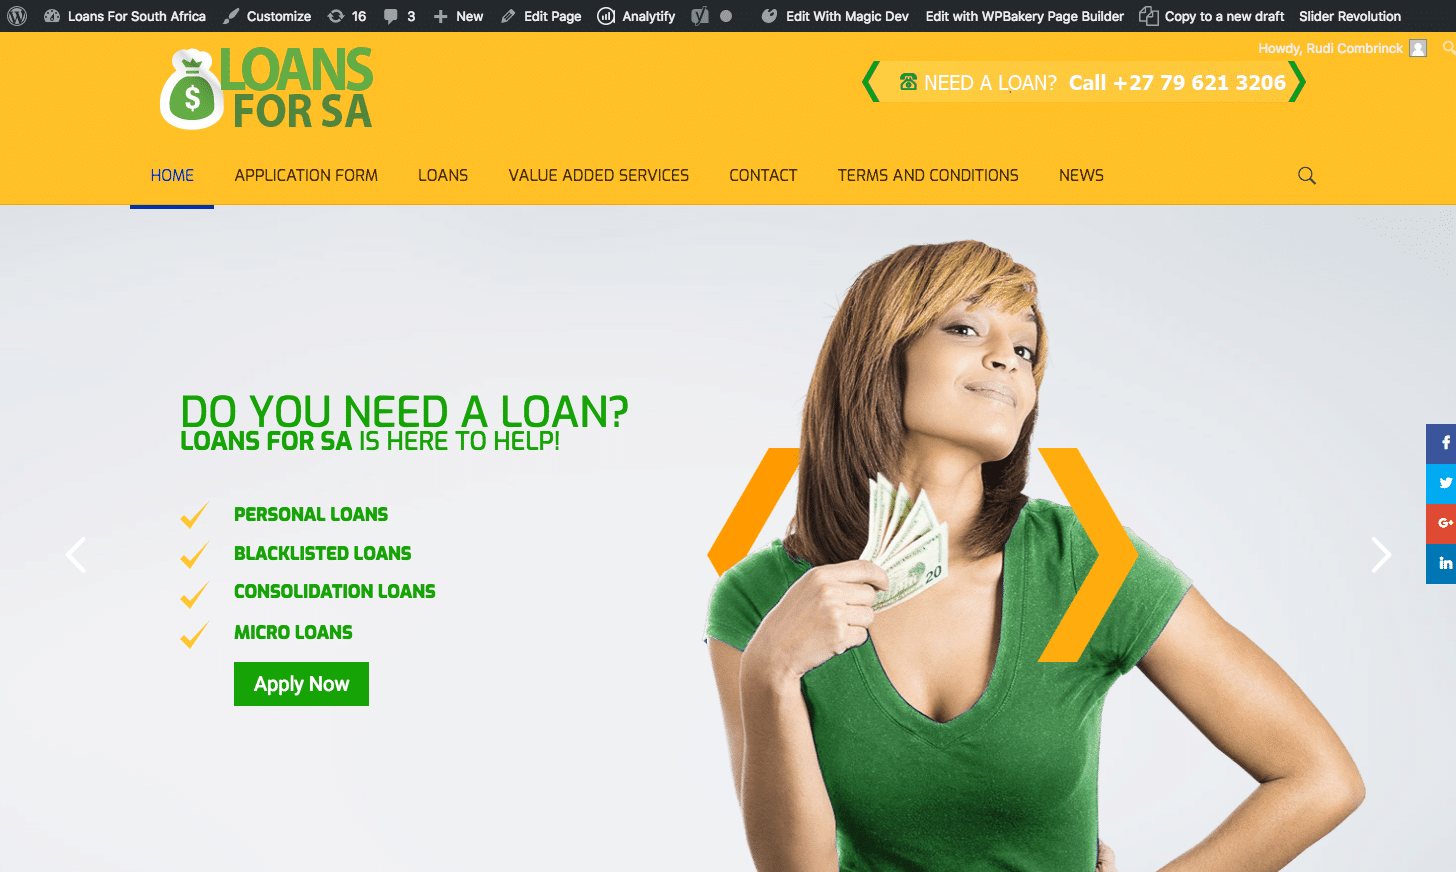 SEO Services for Loans